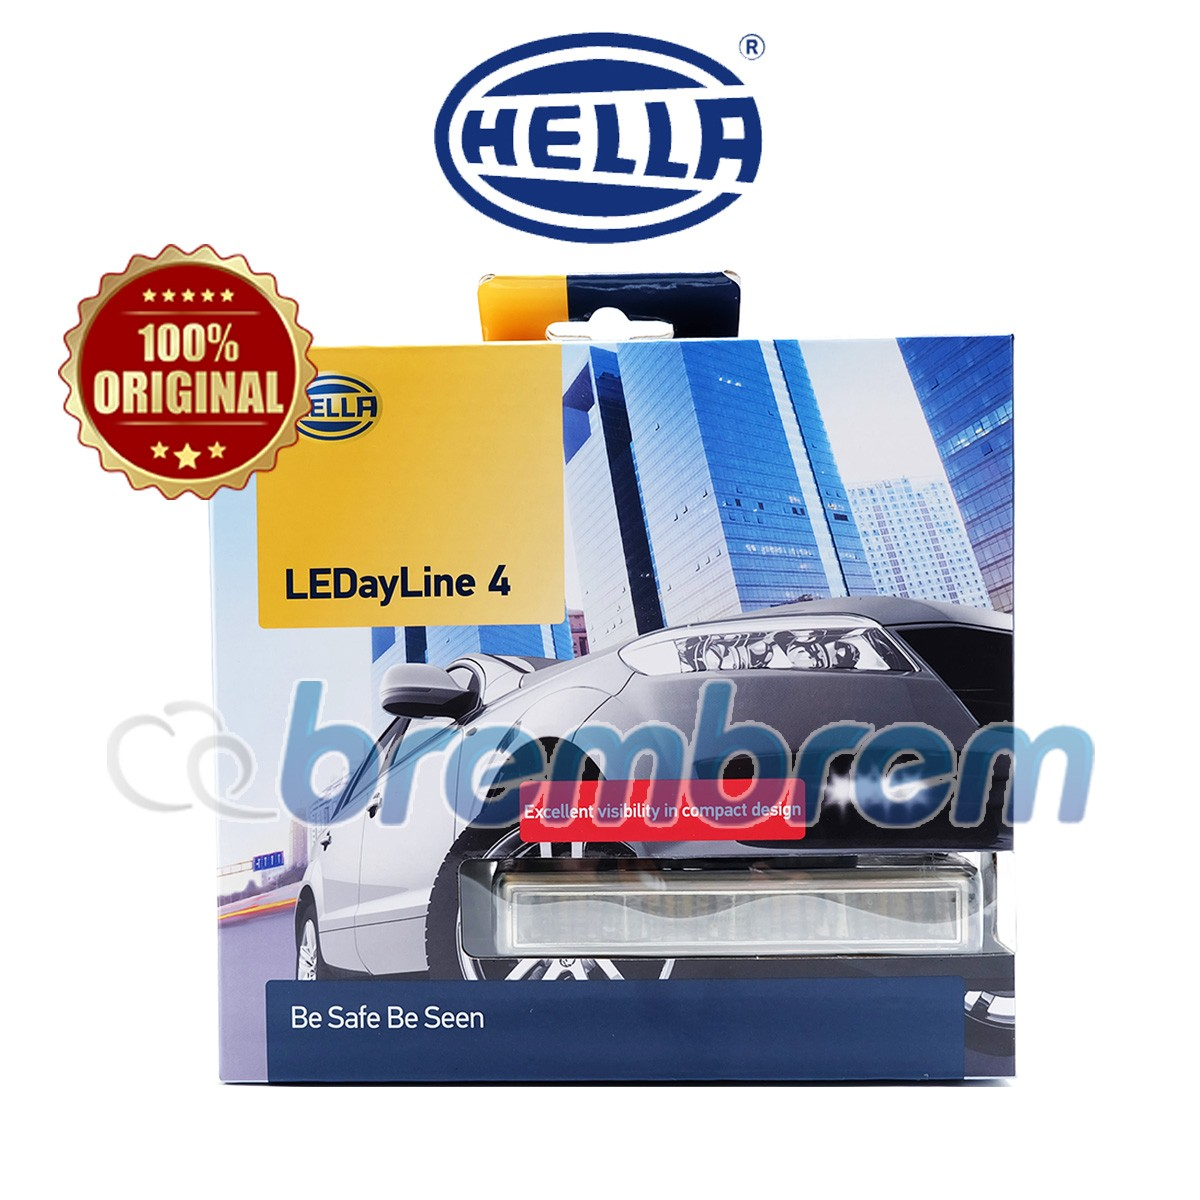 HELLA LED DAY LINE 4 - LAMPU DRL MOBIL